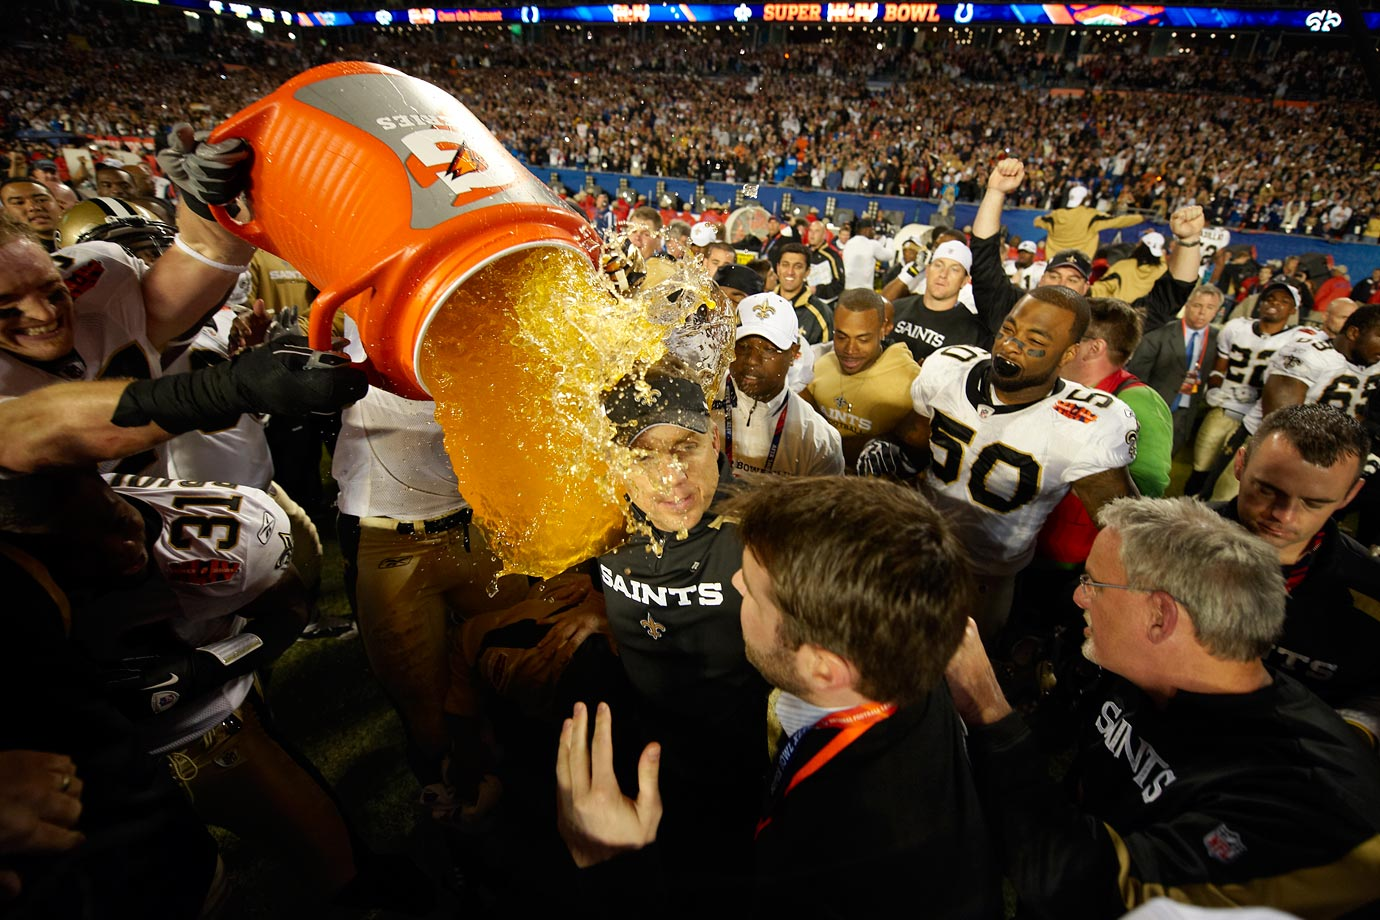 February 7, 2010 — Super Bowl XLIV (Saints over Colts)